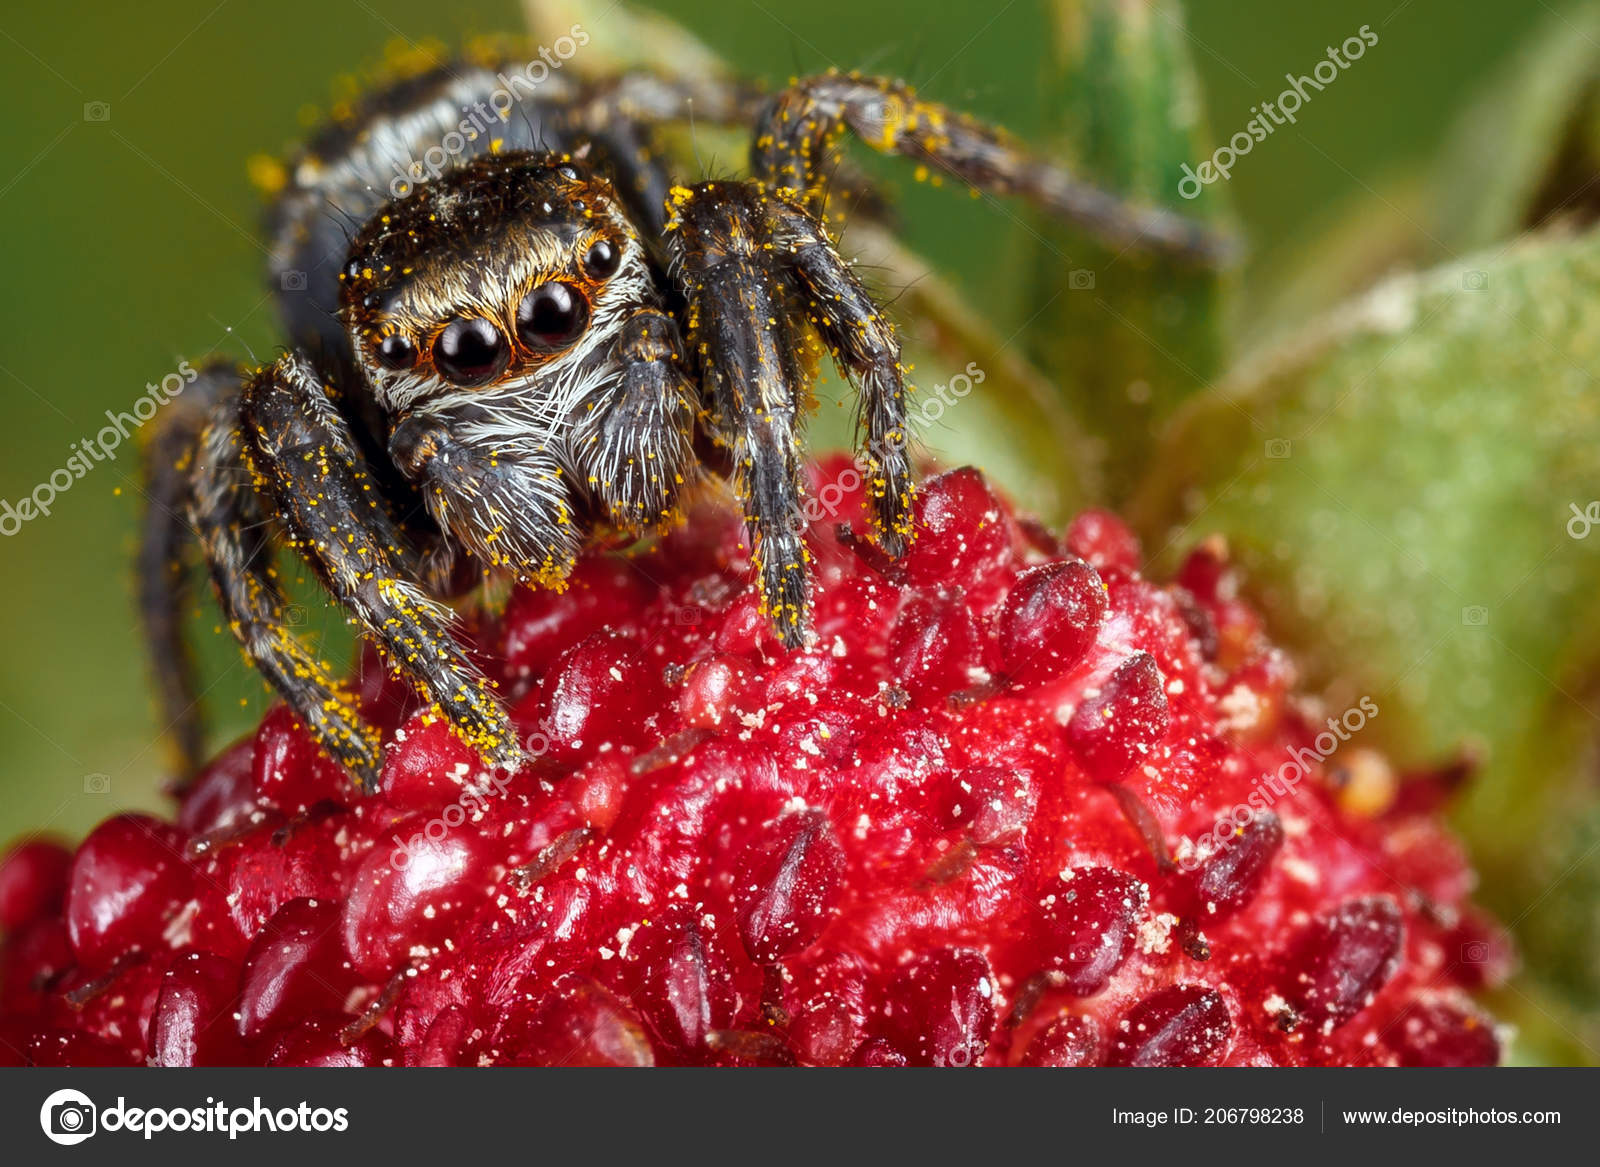 Jumping Spider Ruby Red Garden Strawberry Yellow Seeds Background Stock Photo C Lincikas 206798238